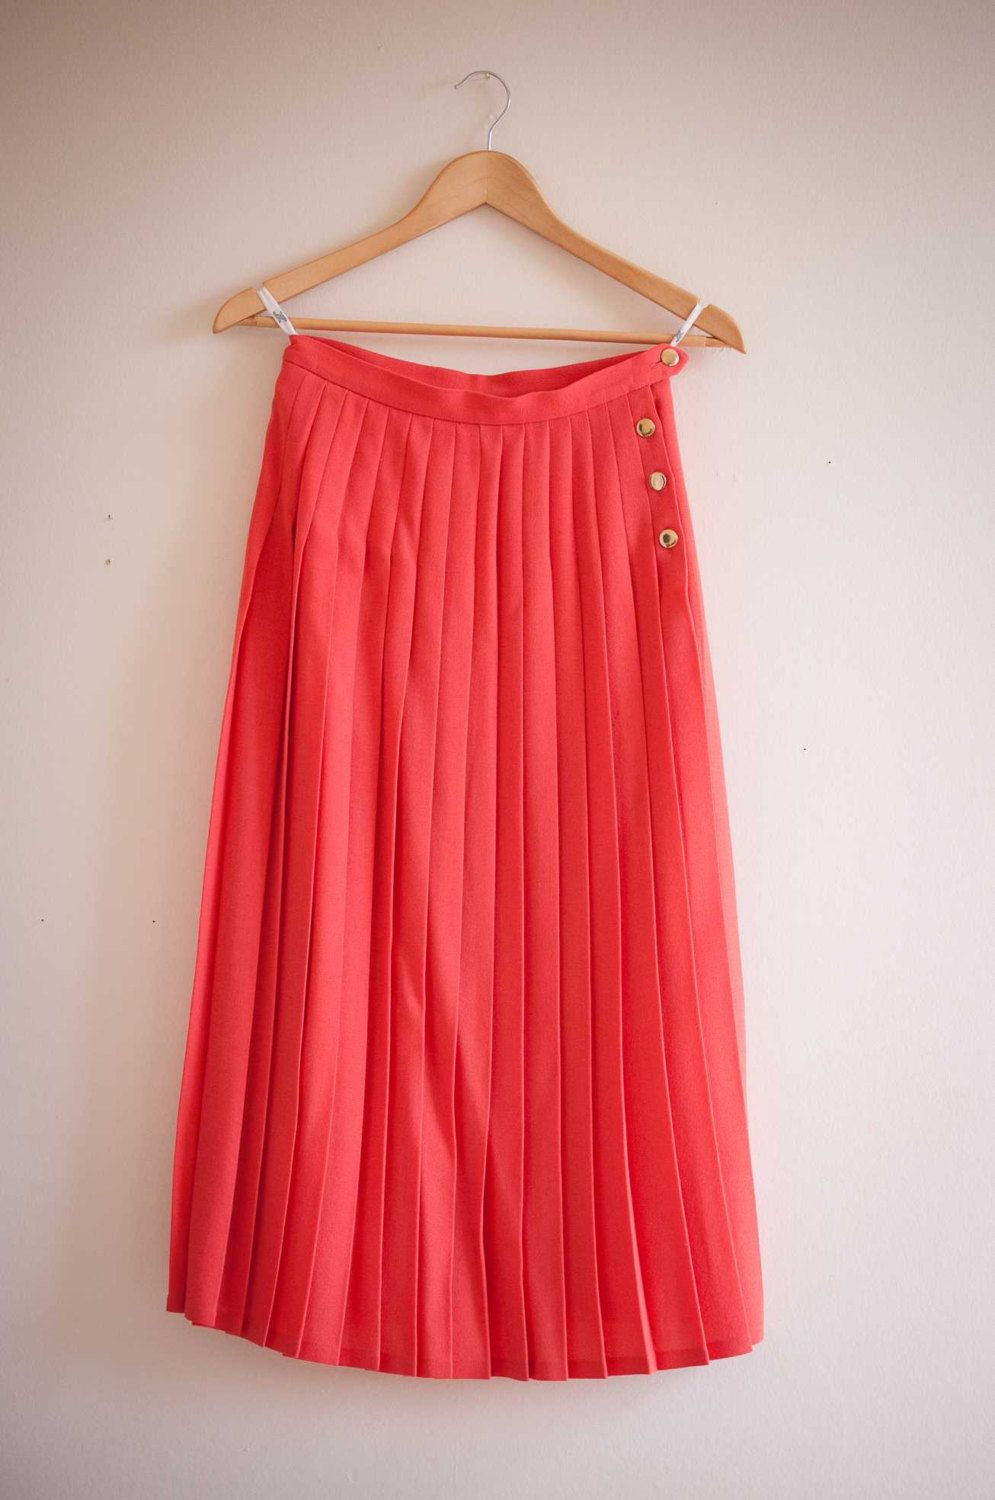 Coral Wool JAEGER Skirt in Coral with Gold Buttons UK 10 door TimeObscuraVintage op Etsy https://www.etsy.com/nl/listing/159564862/coral-wool-jaeger-skirt-in-coral-with